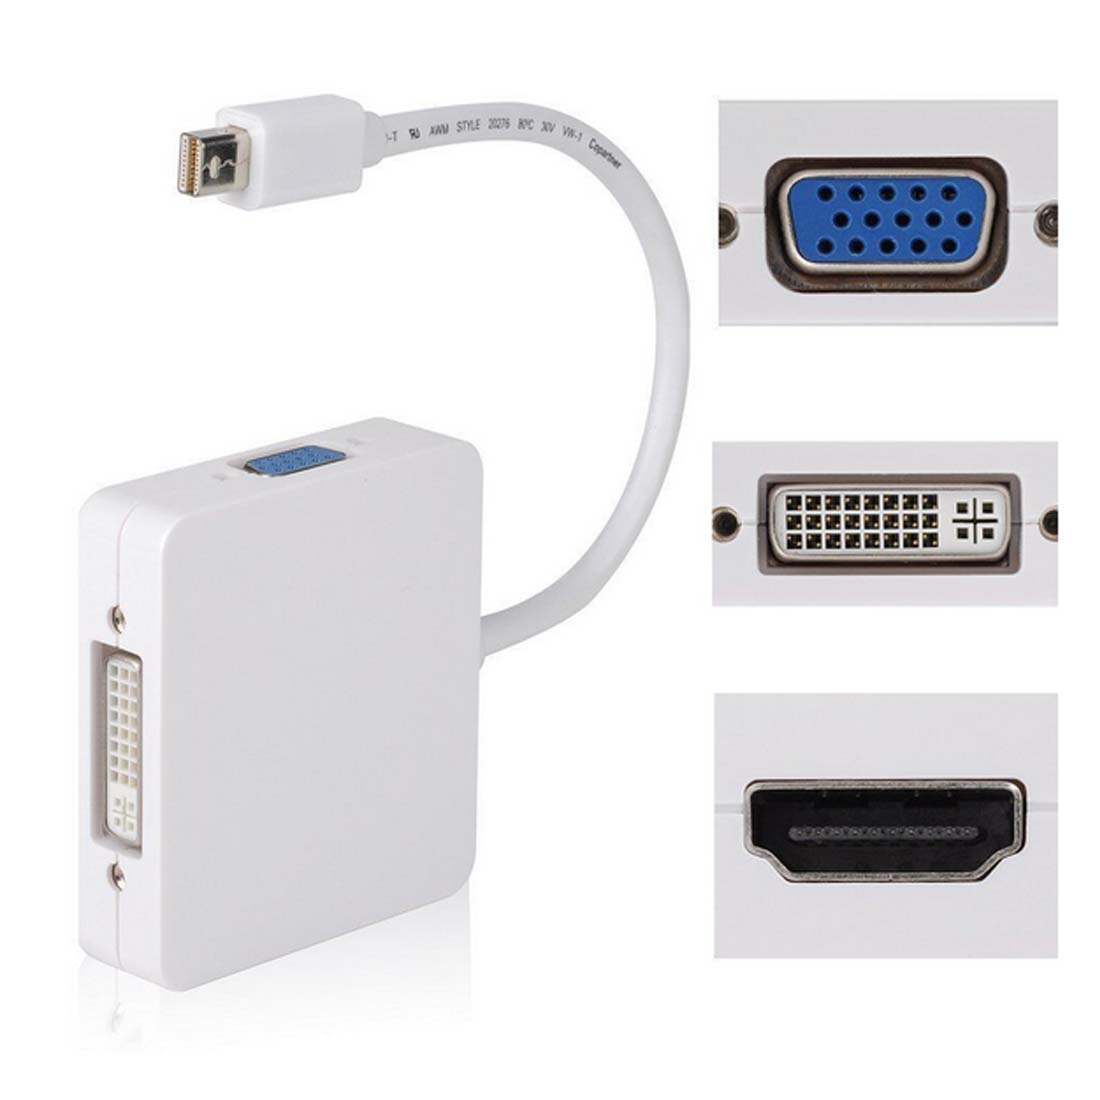 Marsnaska 3 in1 Thunderbolt Mini Displayport DP to HDMI DVI VGA Adapter Display port Cable for apple MacBook Pro Mac Book Air marsnaska 3 in 1 thunderbolt mini displayport dp to hdmi dvi vga adapter display port cable for apple macbook pro mac book air